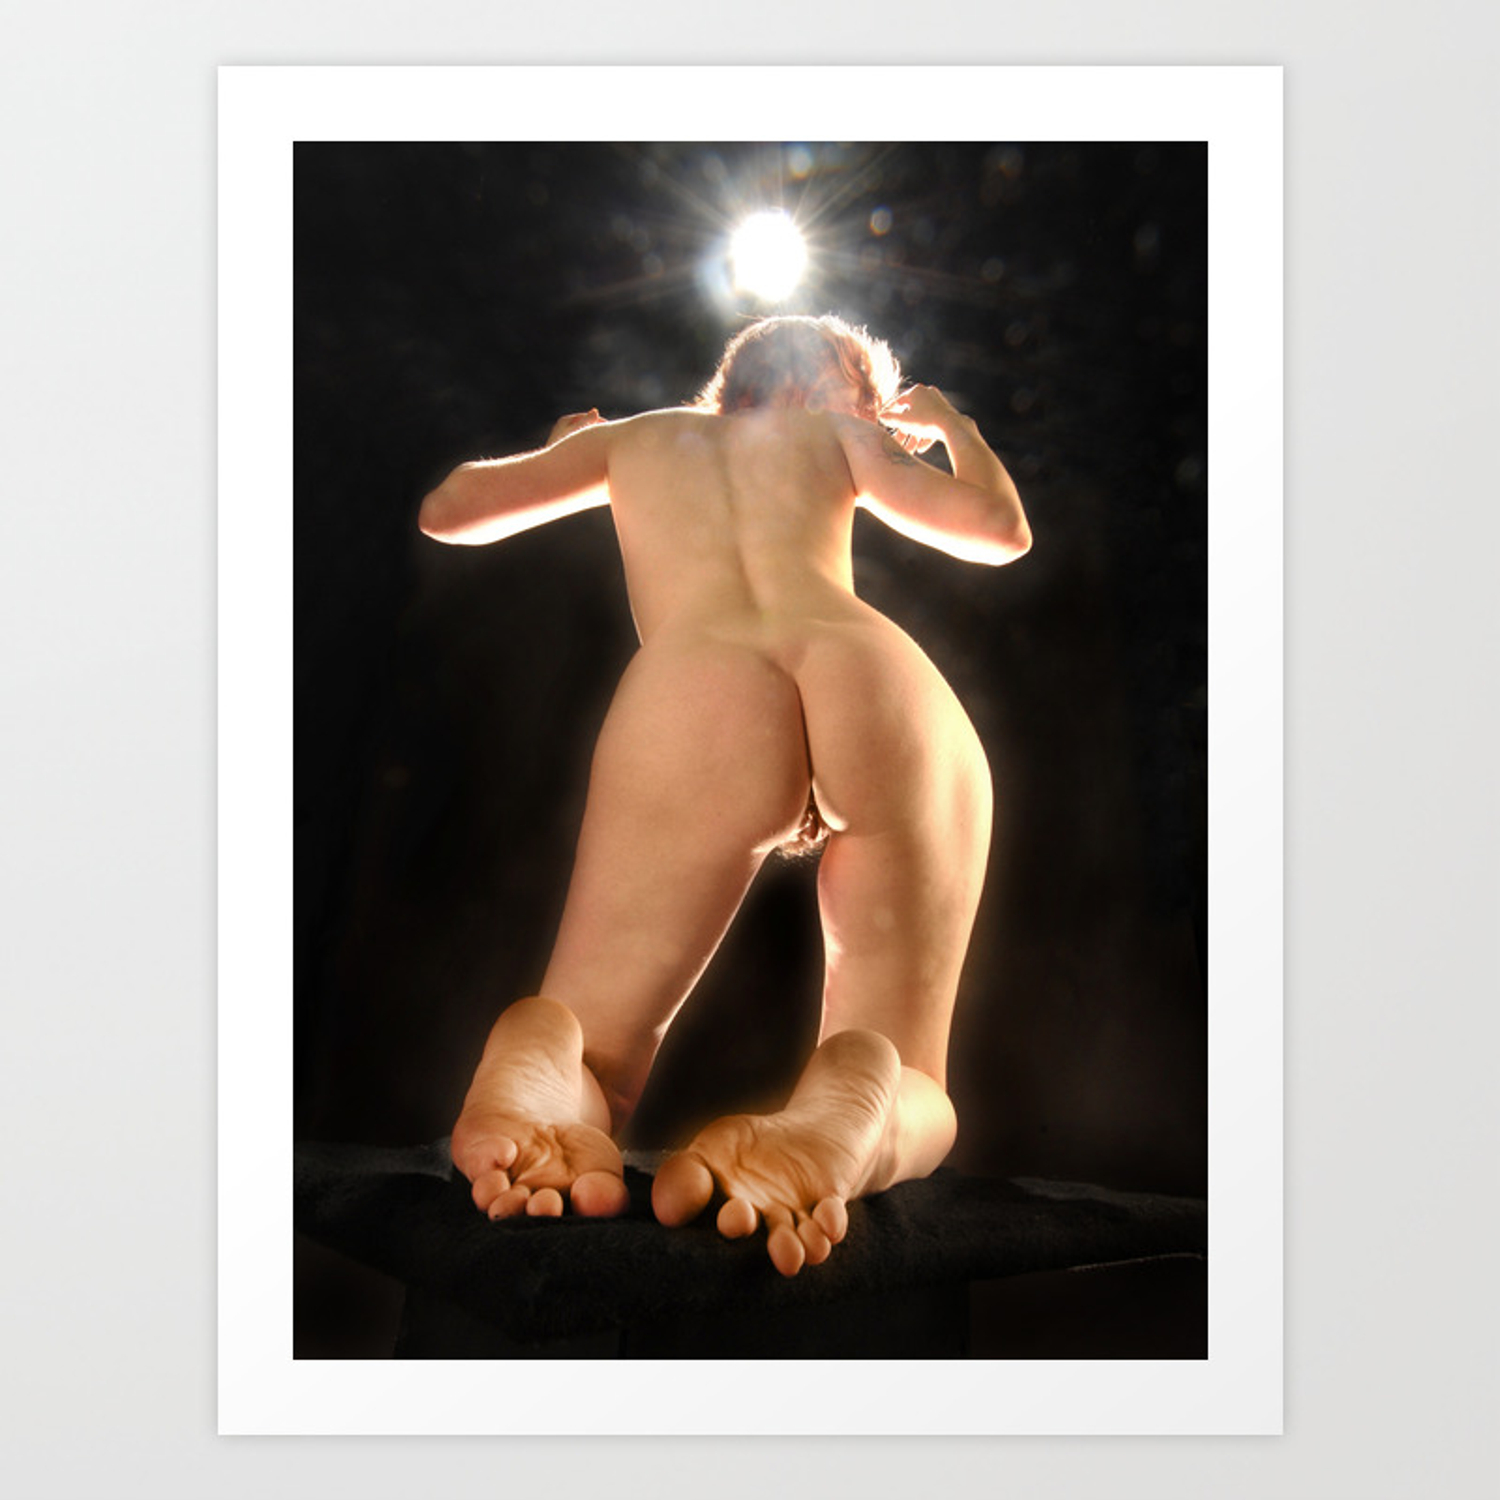 Ams Nude 5936-ams art nude model from below rear view toes feet bum back art print